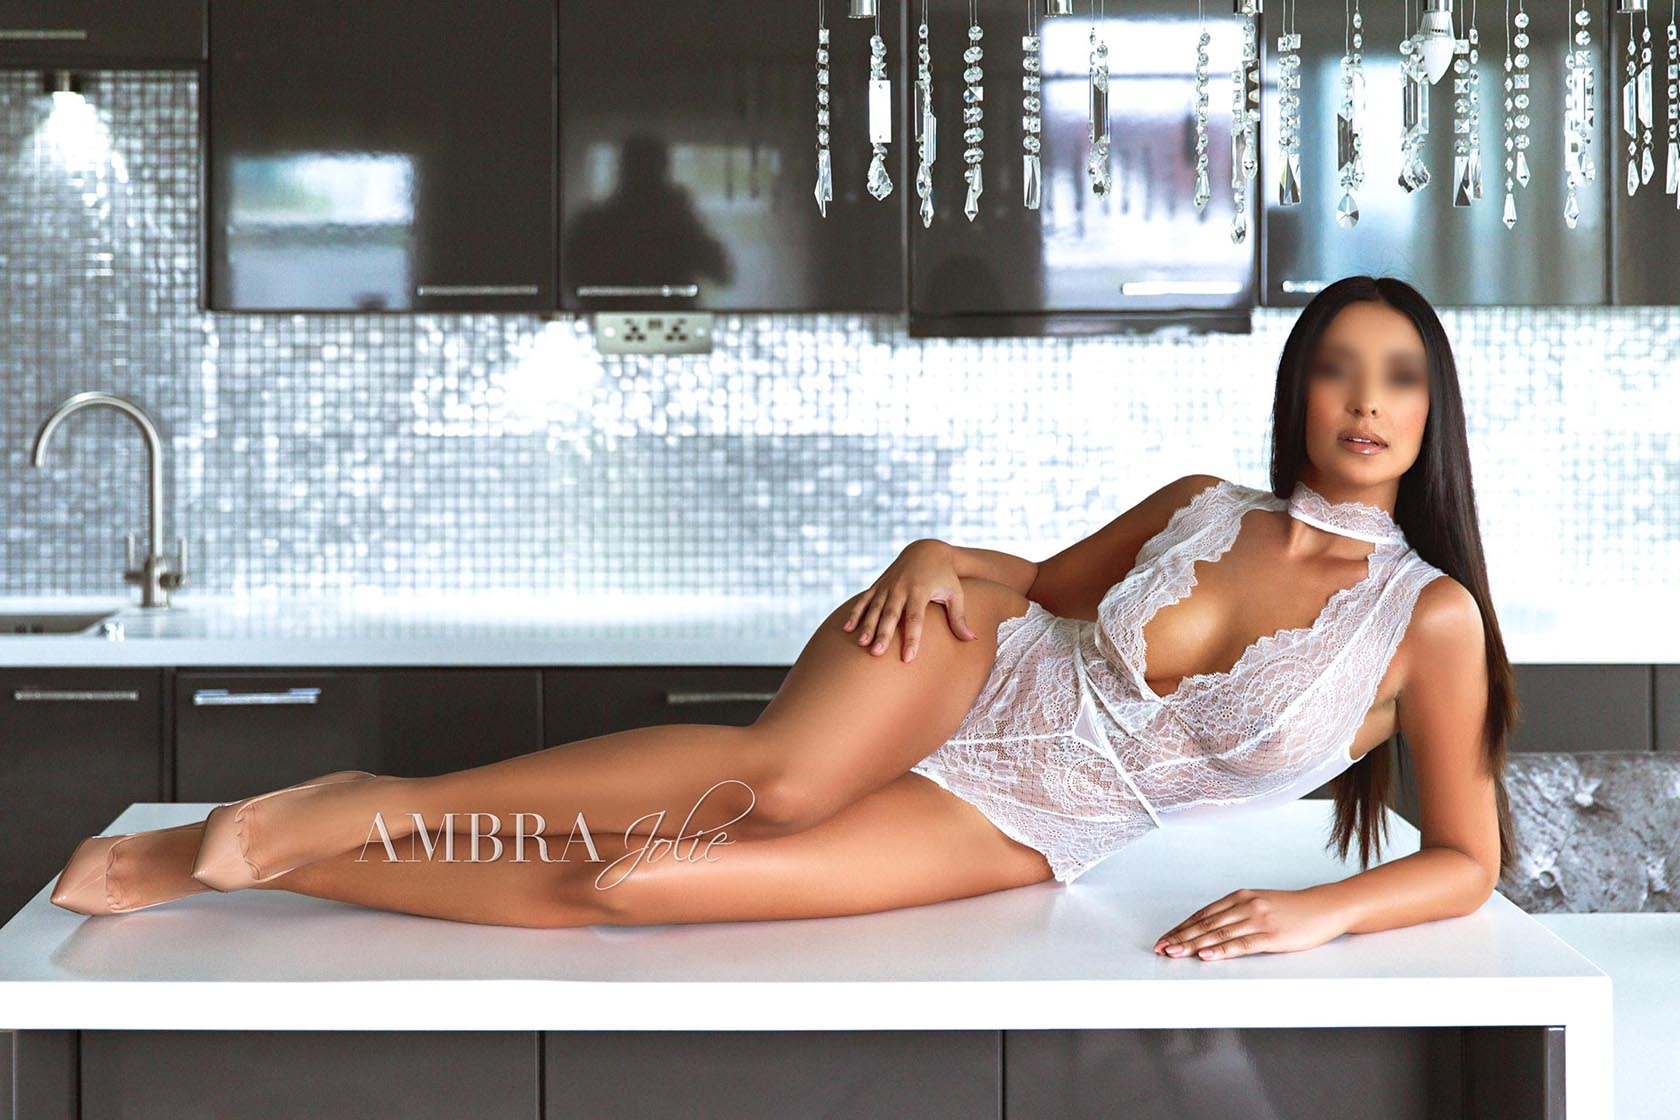 Ambra Jolie - Brunette Vip Model and Top Class Escort